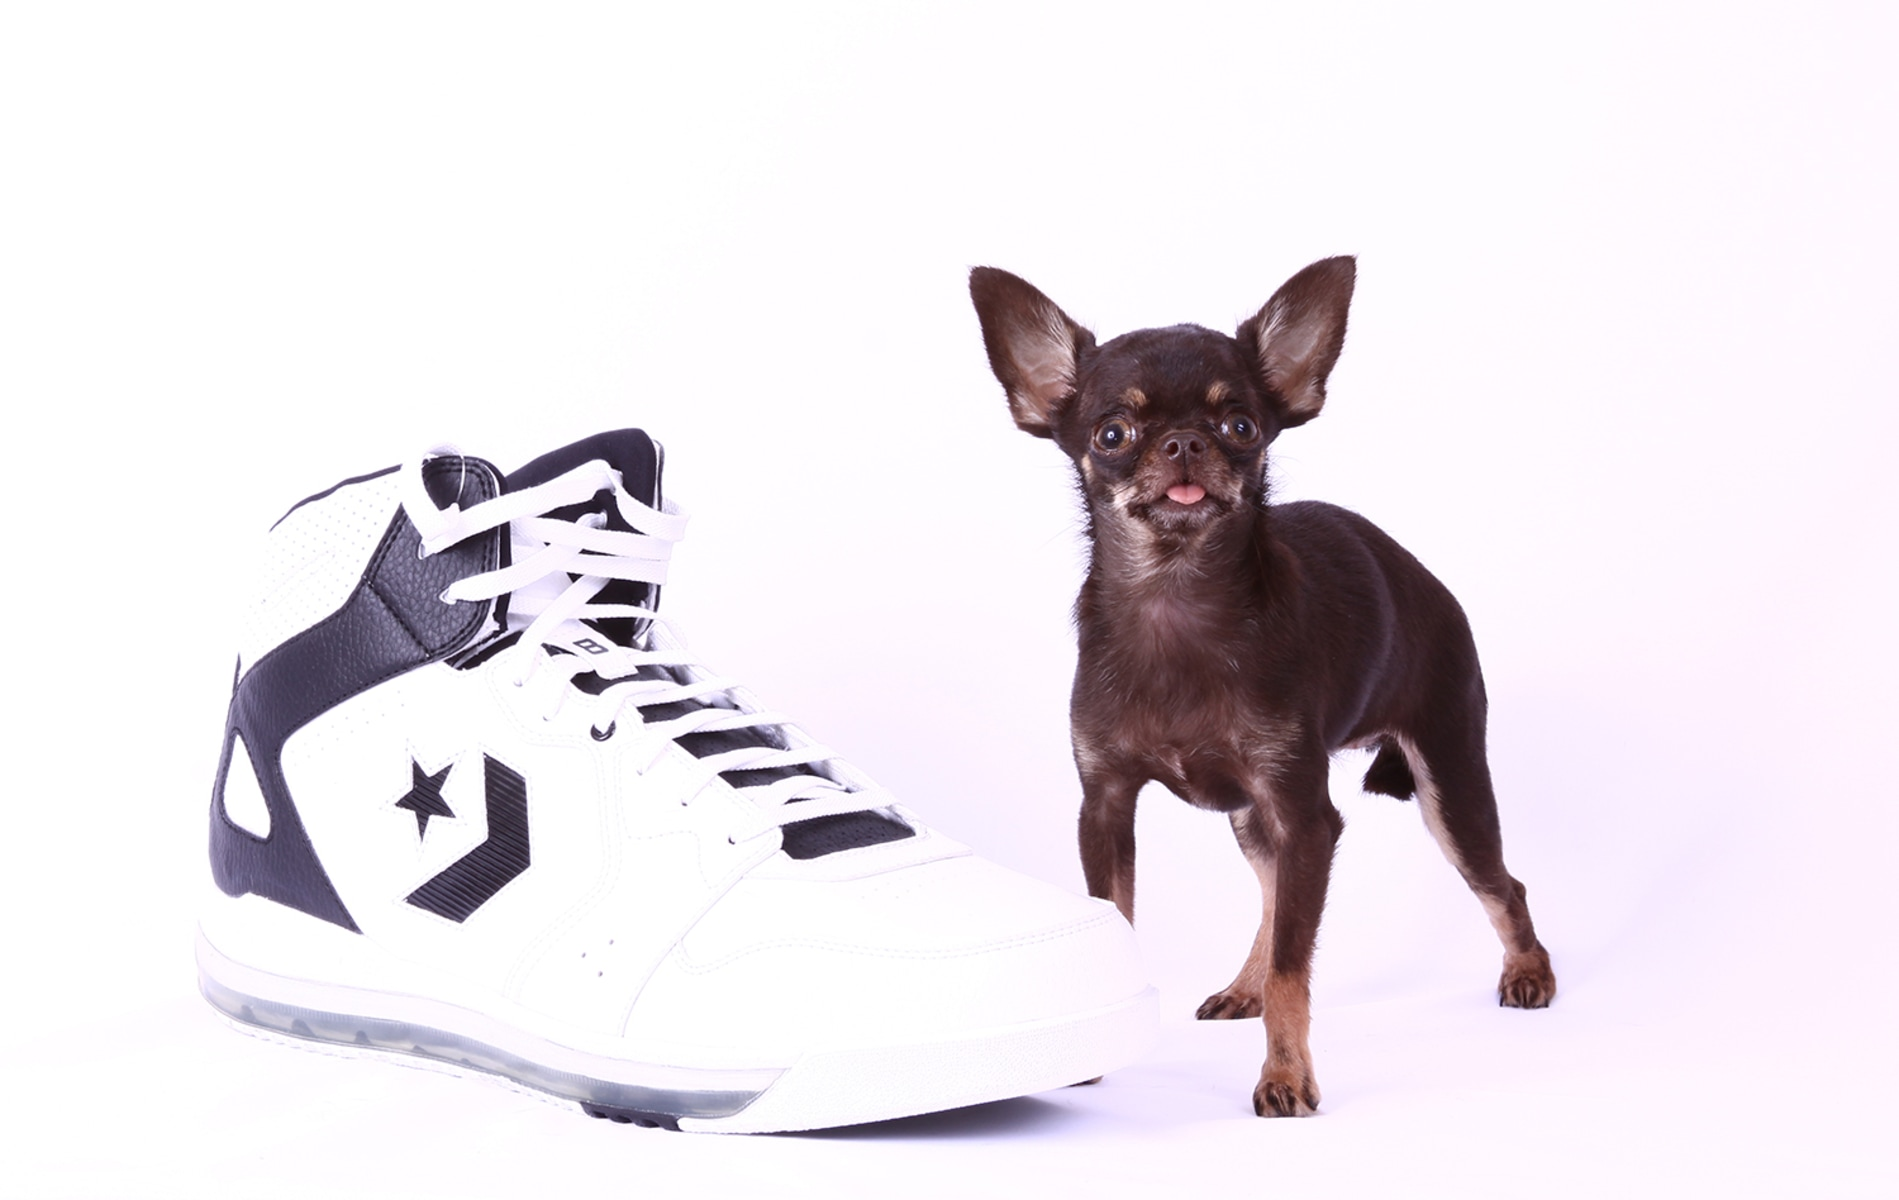 image the smallest dog living in terms of height is a female chihuahua